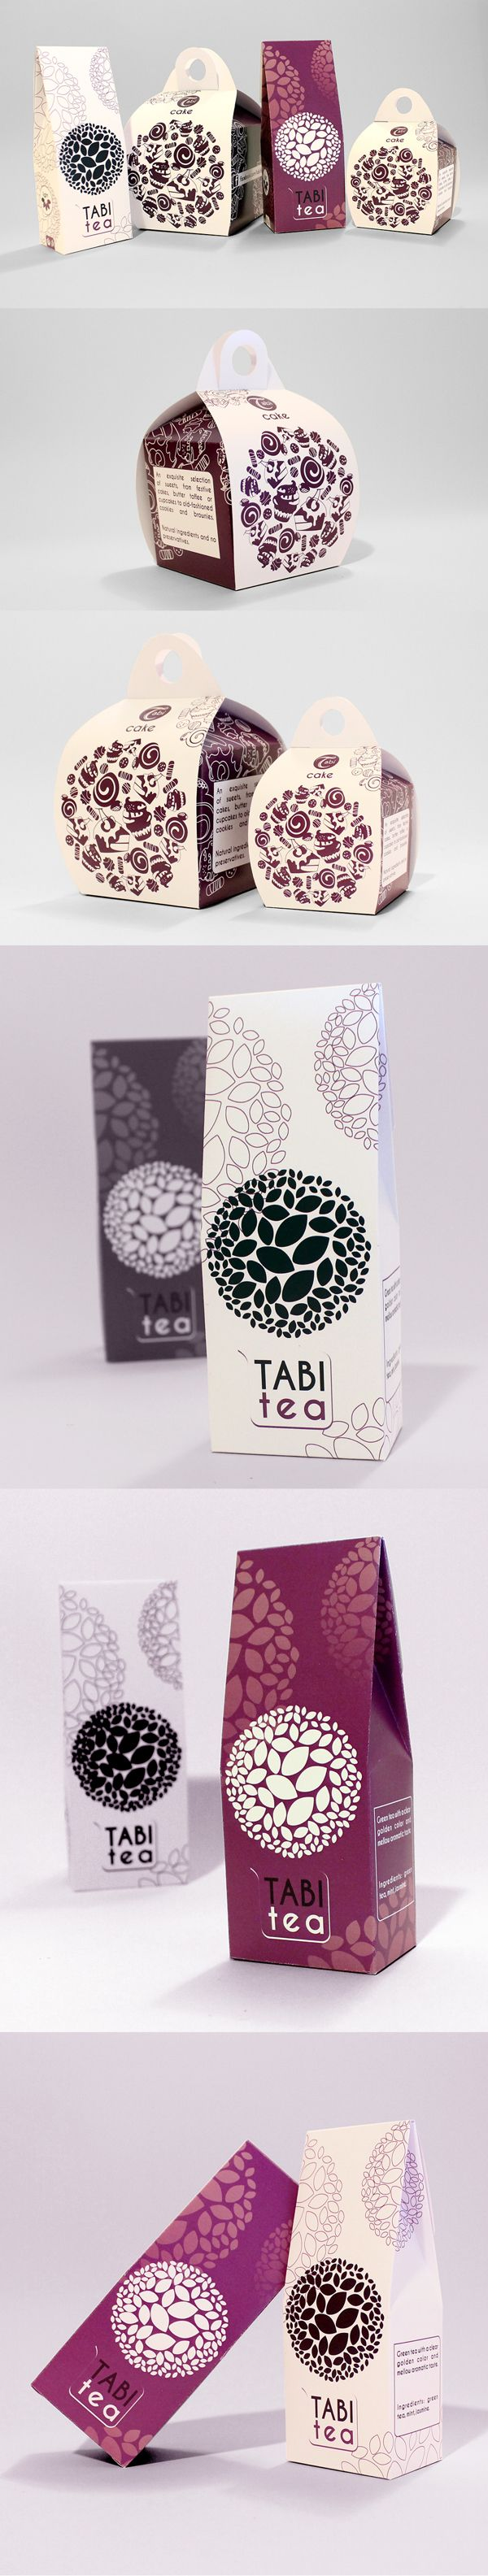 Tea and Cake Packaging for Tabi Cafe by CULT CAT , via Behance